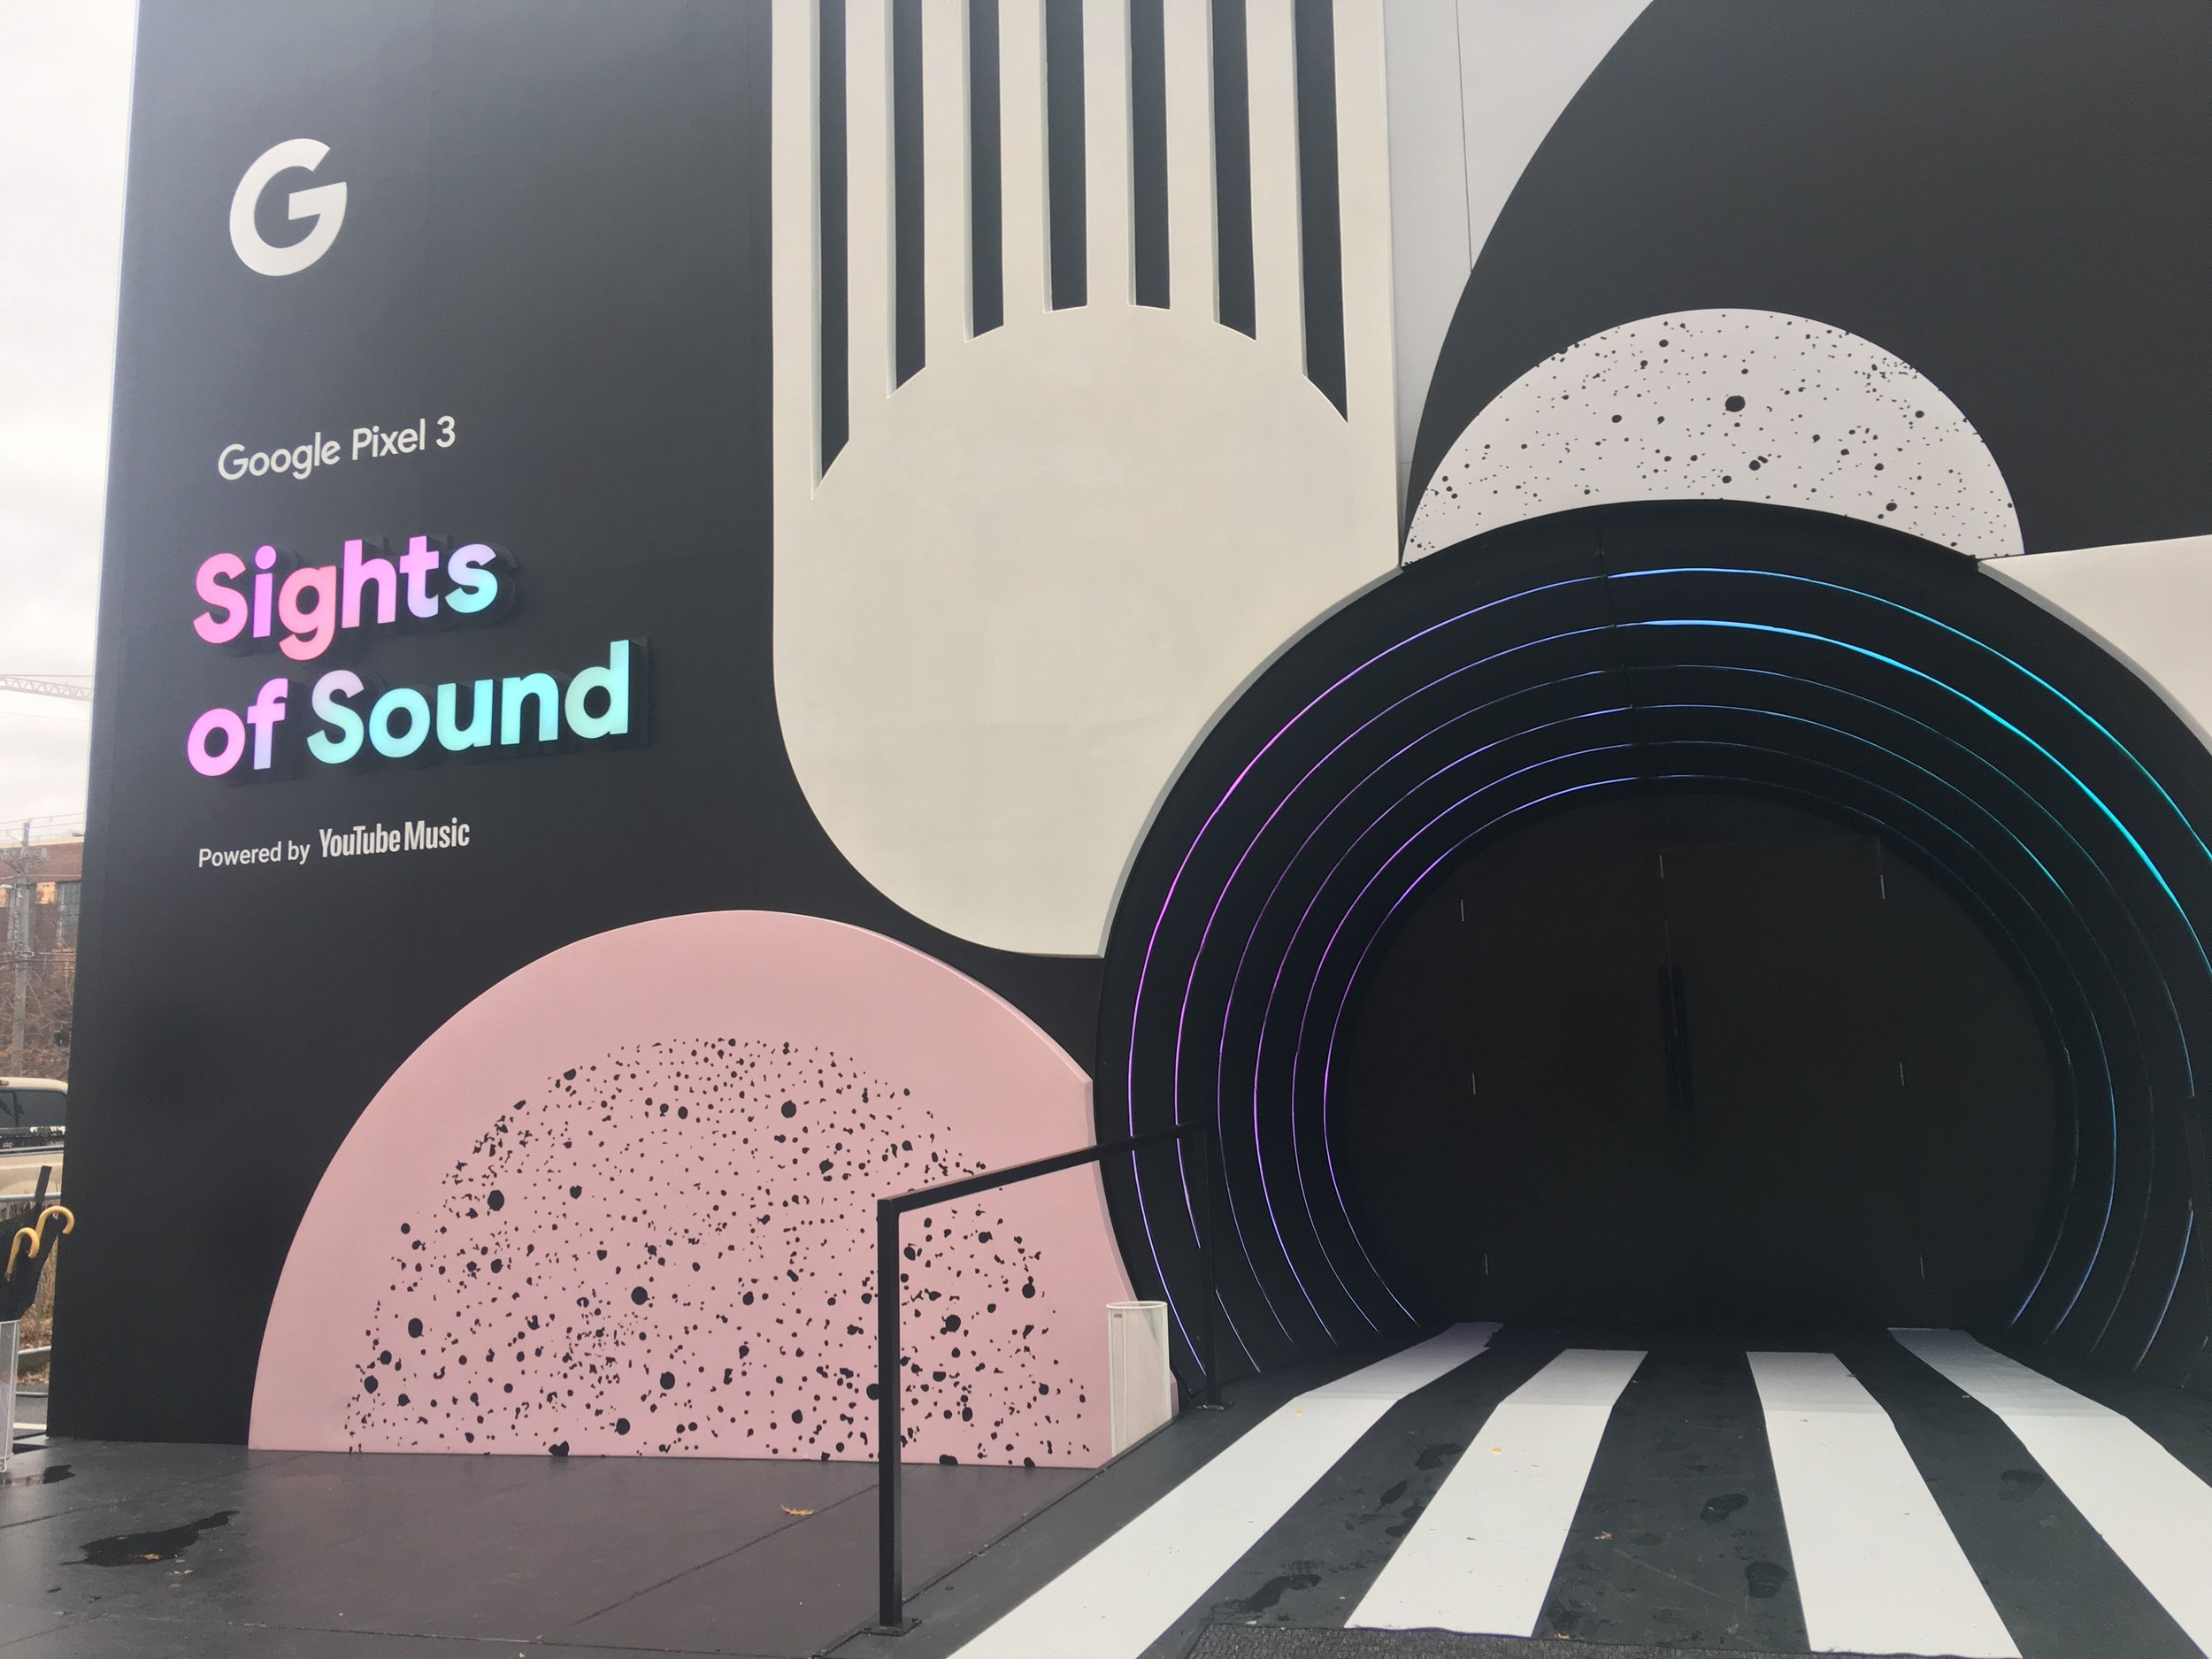 google sights of sound pixel 3 building Atlanta